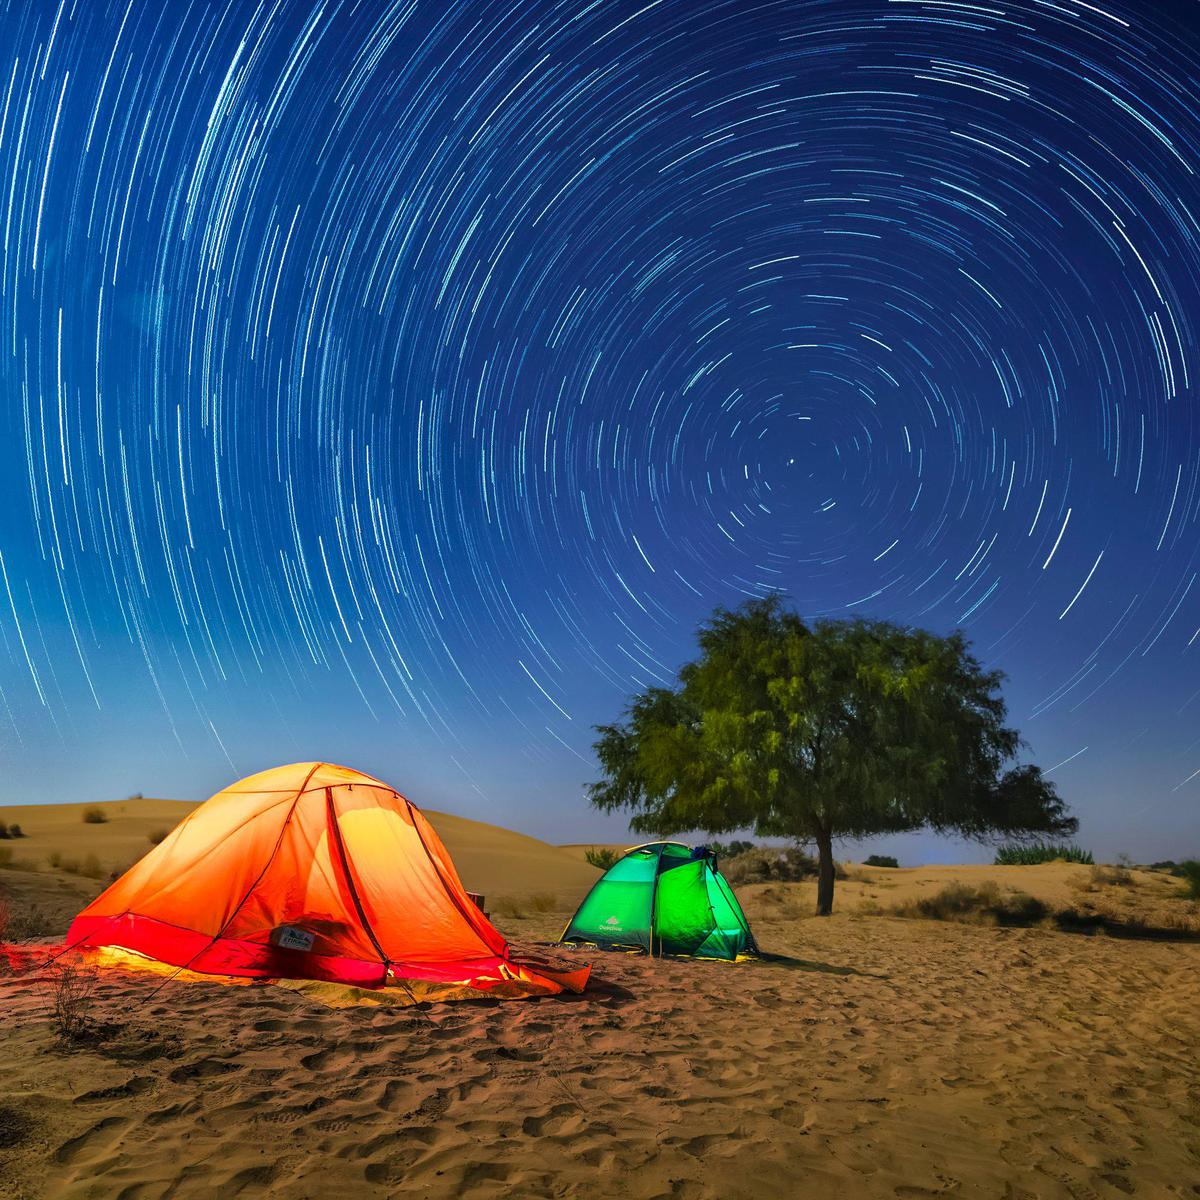 Night Sky Photography With Sony SEL1224G Lens